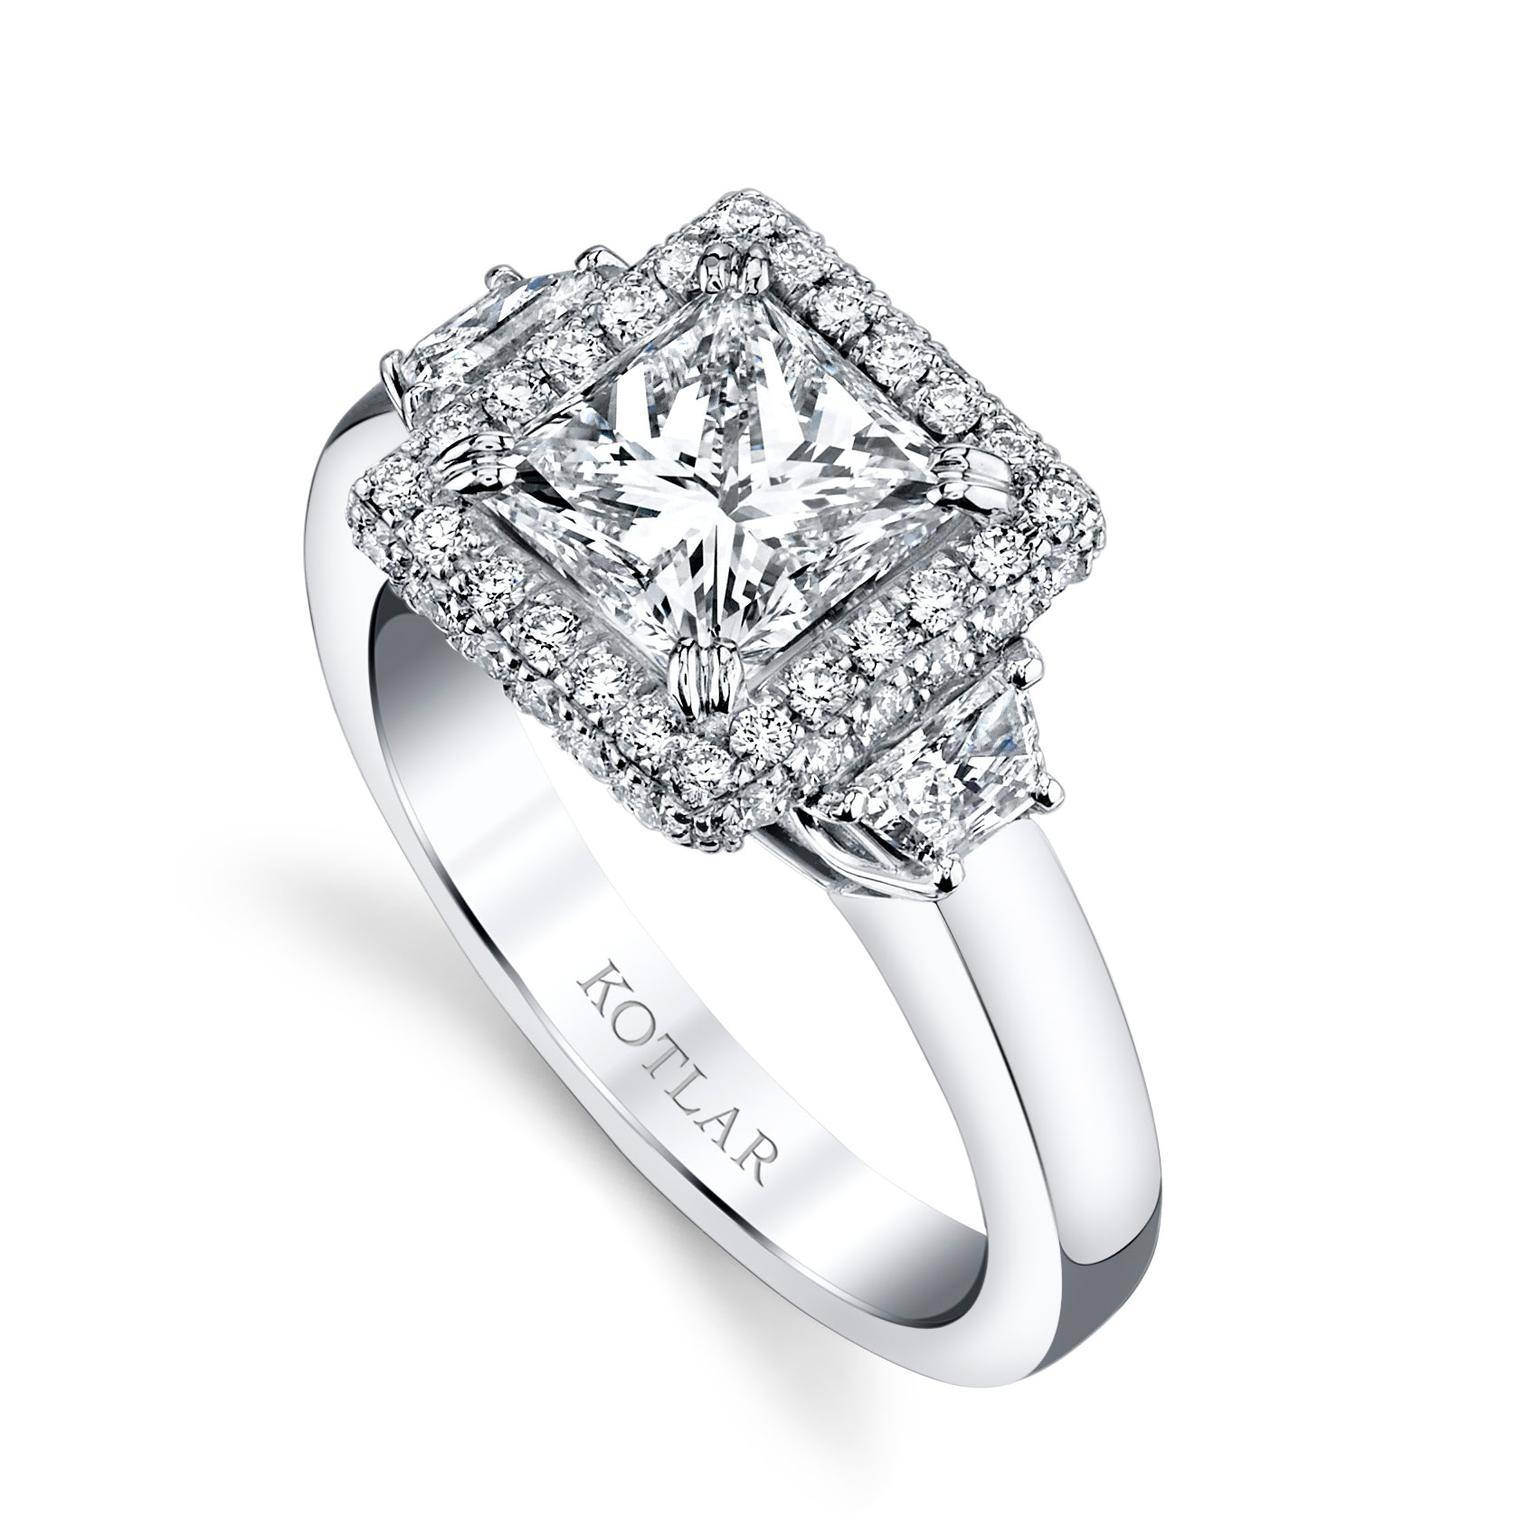 The Romantic Appeal Of Princess Cut Engagement Rings | The For Unique Princess Cut Diamond Engagement Rings (View 12 of 15)